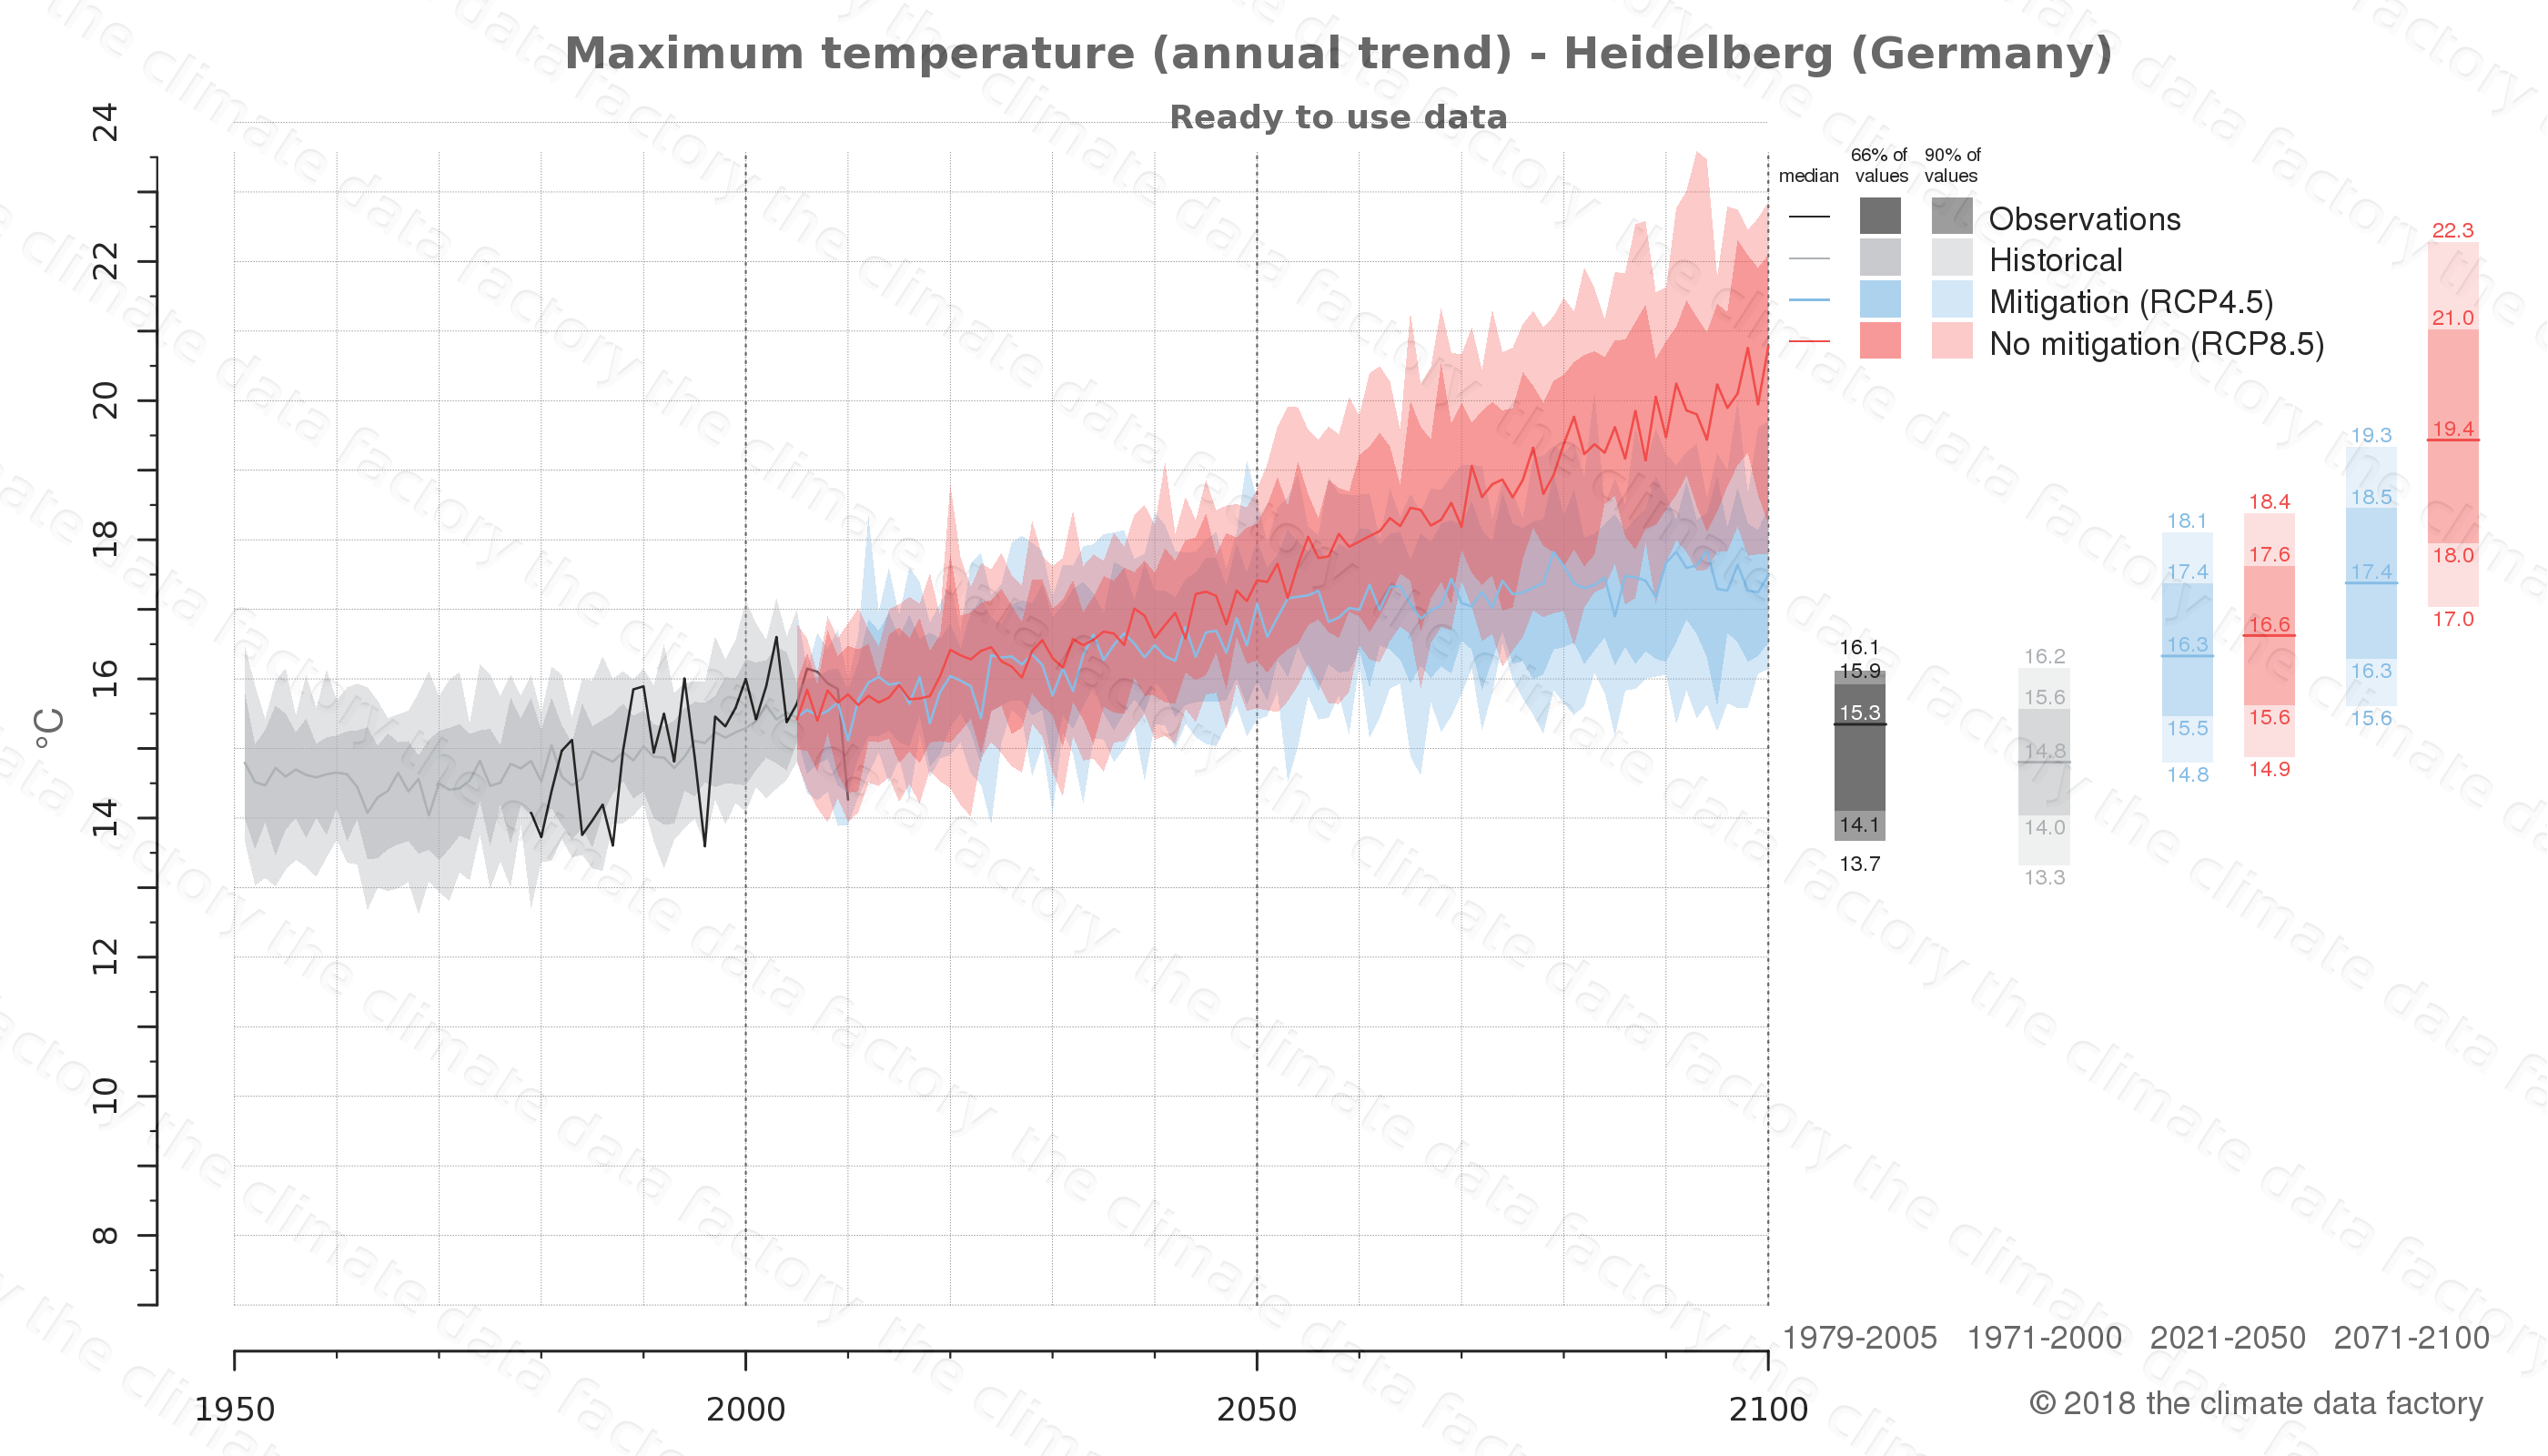 climate change data policy adaptation climate graph city data maximum-temperature heidelberg germany